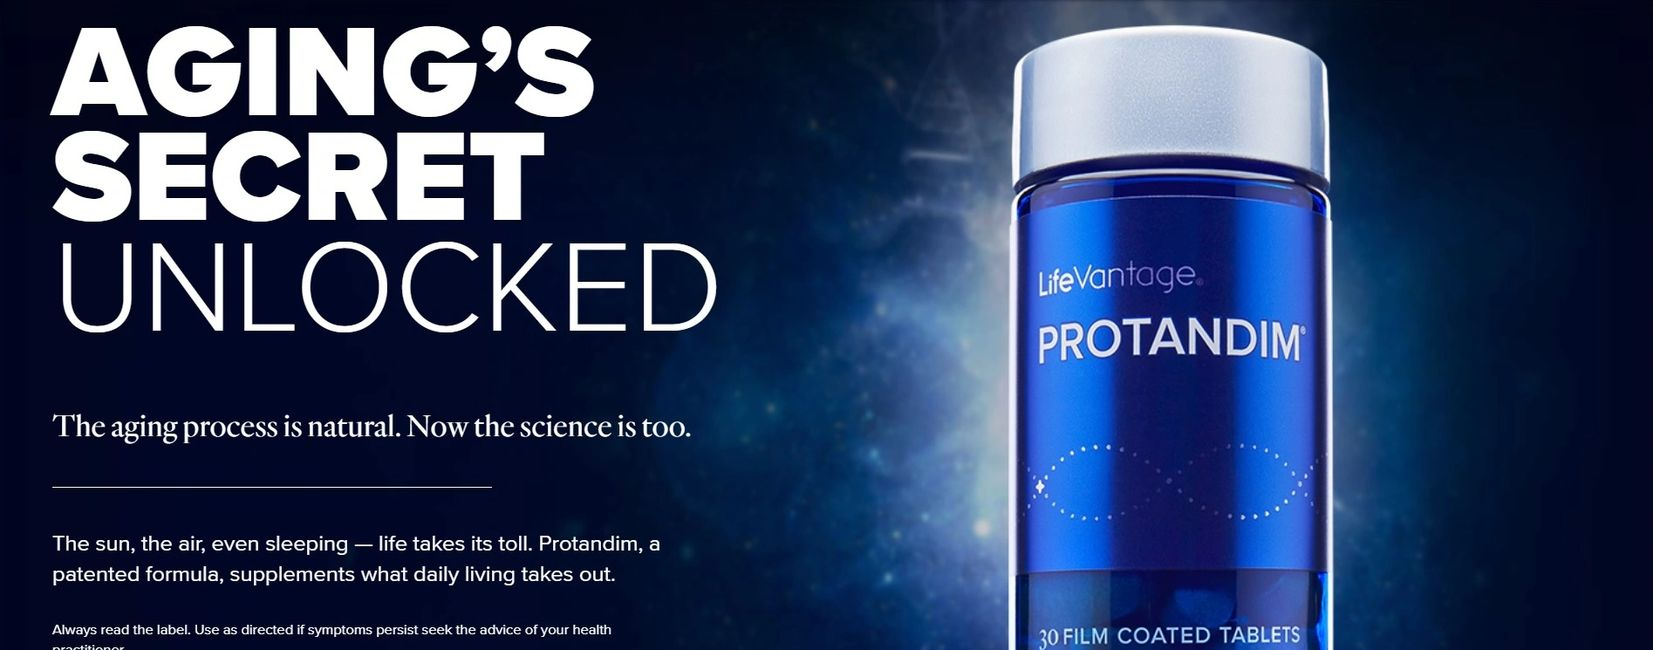 LifeVantage products Protandim and TrueScience anti-aging from inside out and outside in personally